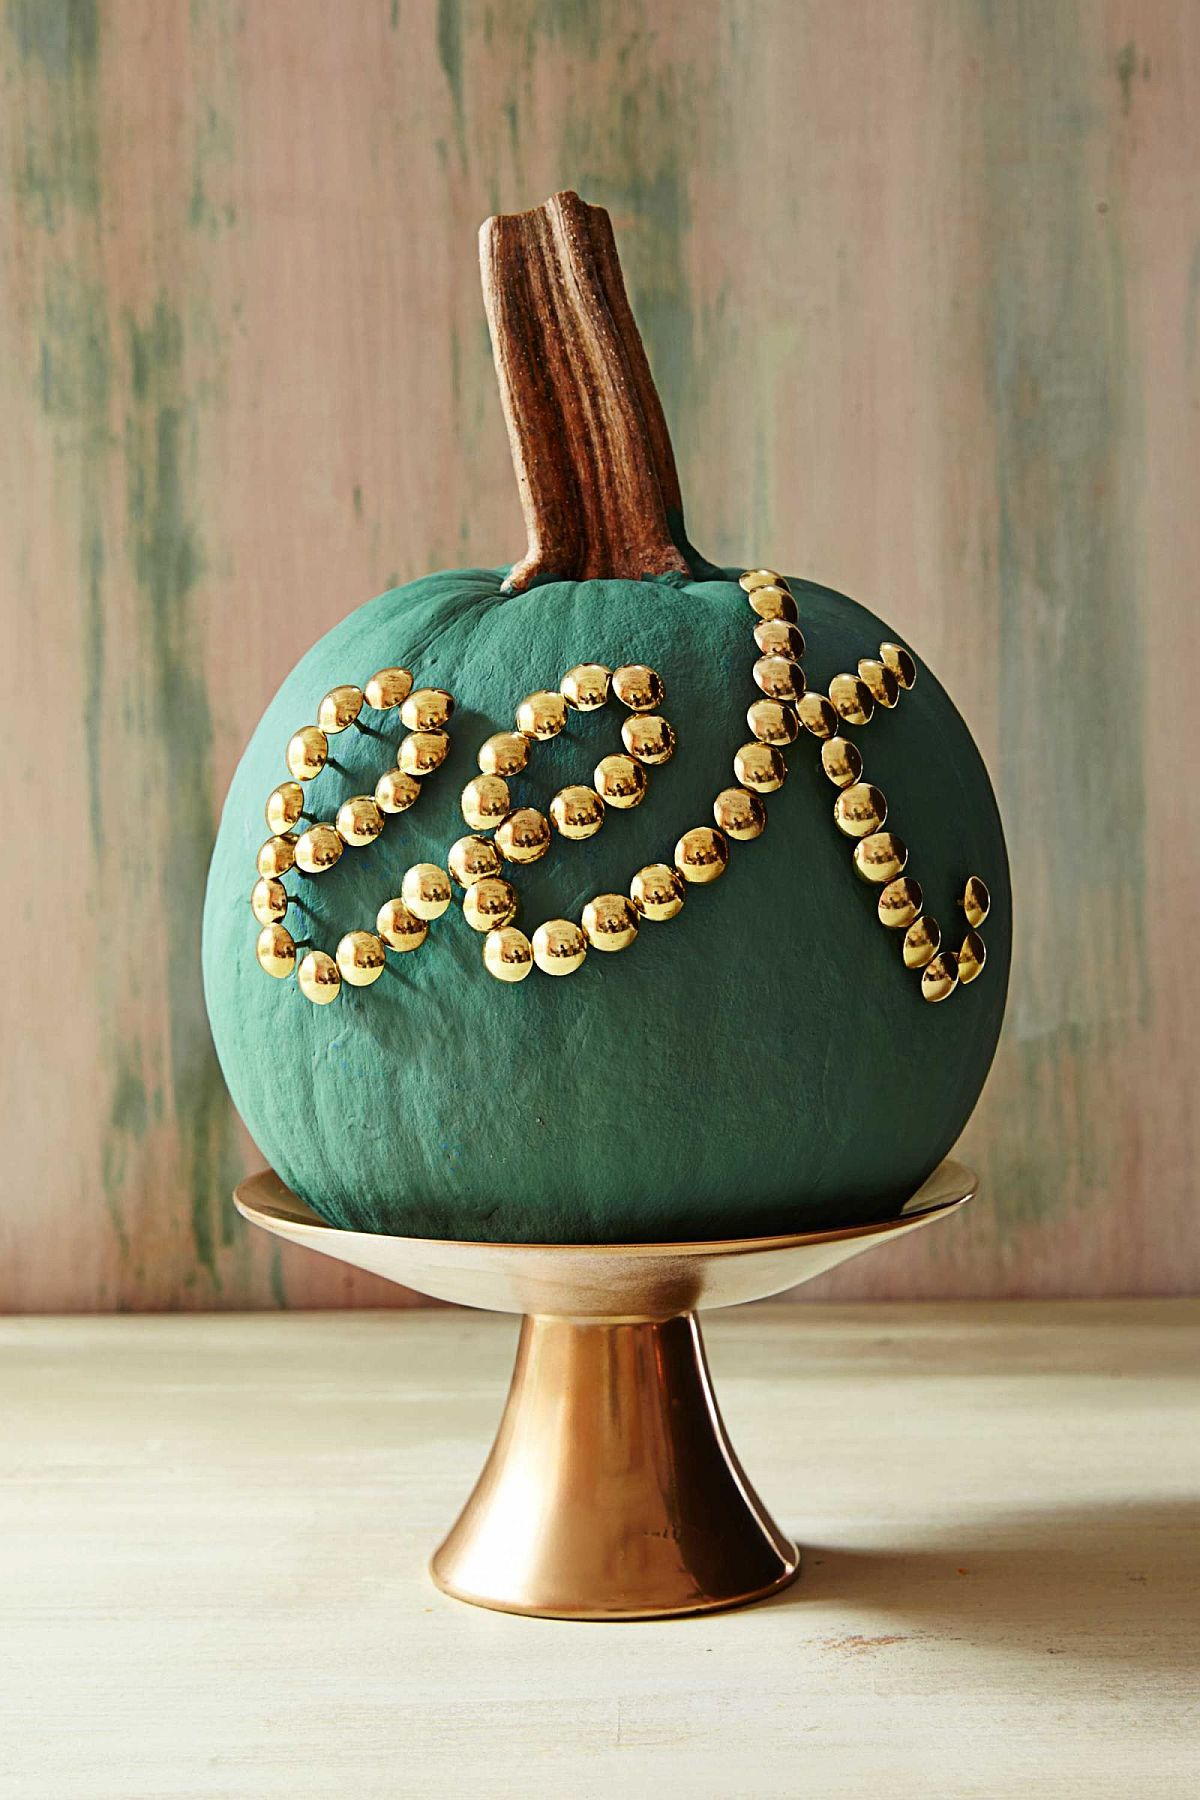 Touch of tacky color and pattern for the Halloween pumpkin [From: Annies Loan]